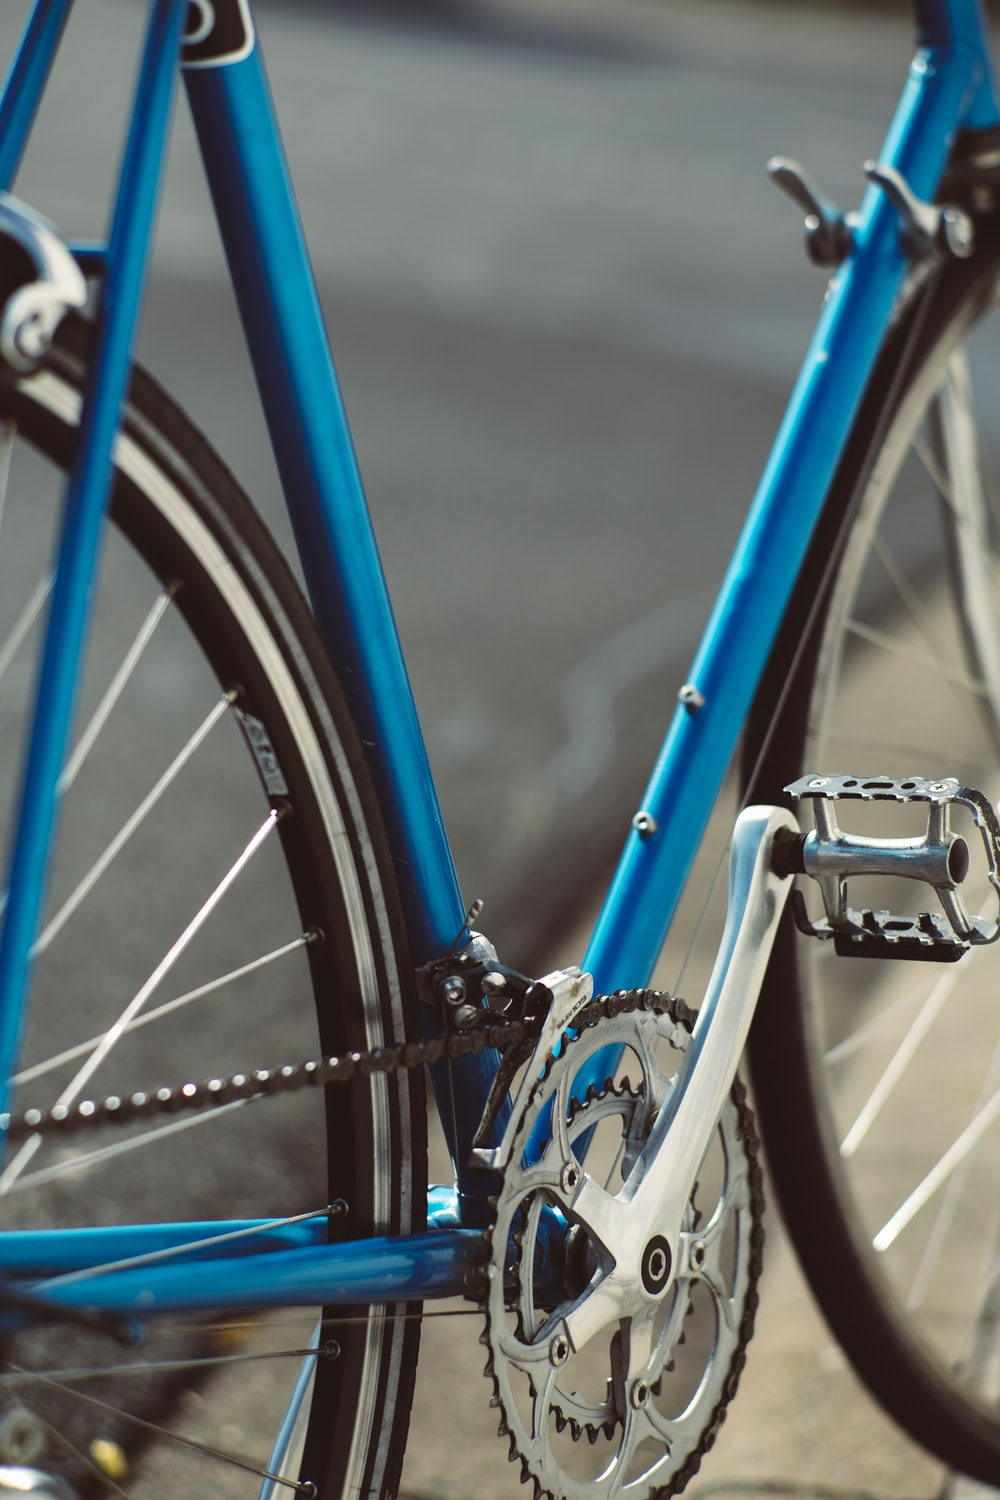 blue and black bicycle in close up photography